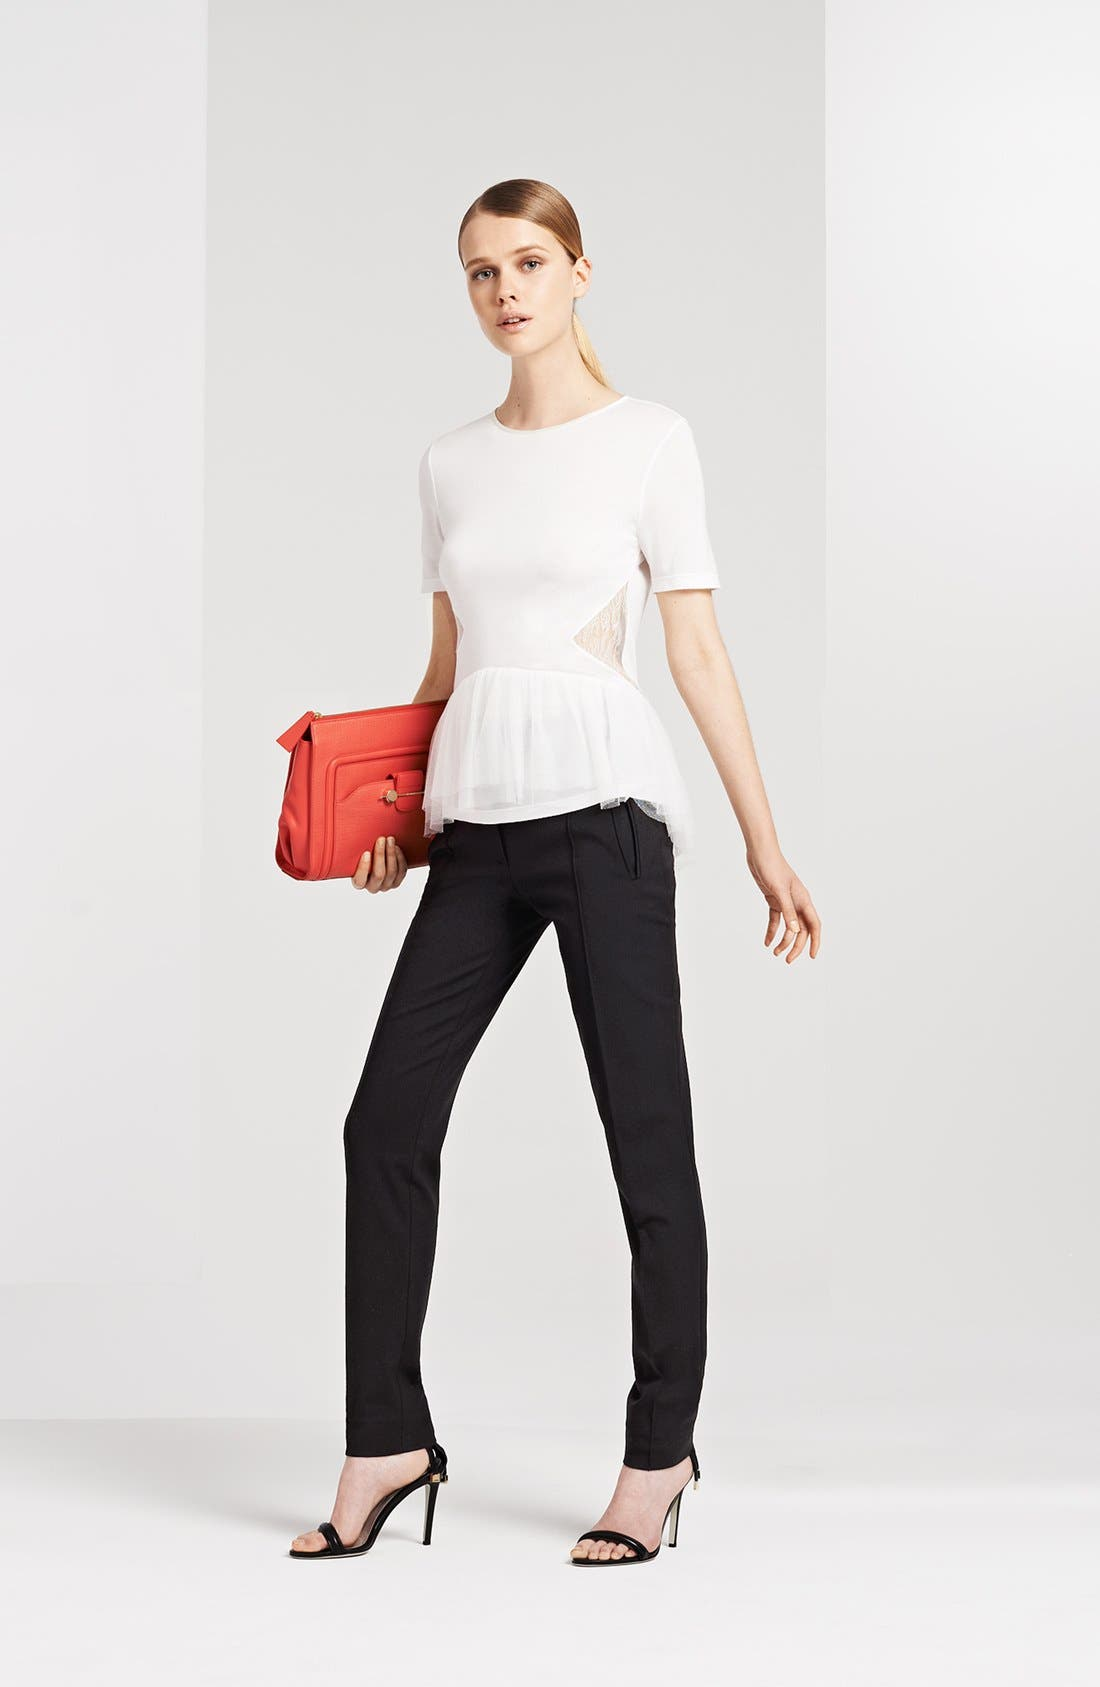 Alternate Image 1 Selected - Jason Wu Lace Peplum Tee, Utility Pants & Accessories